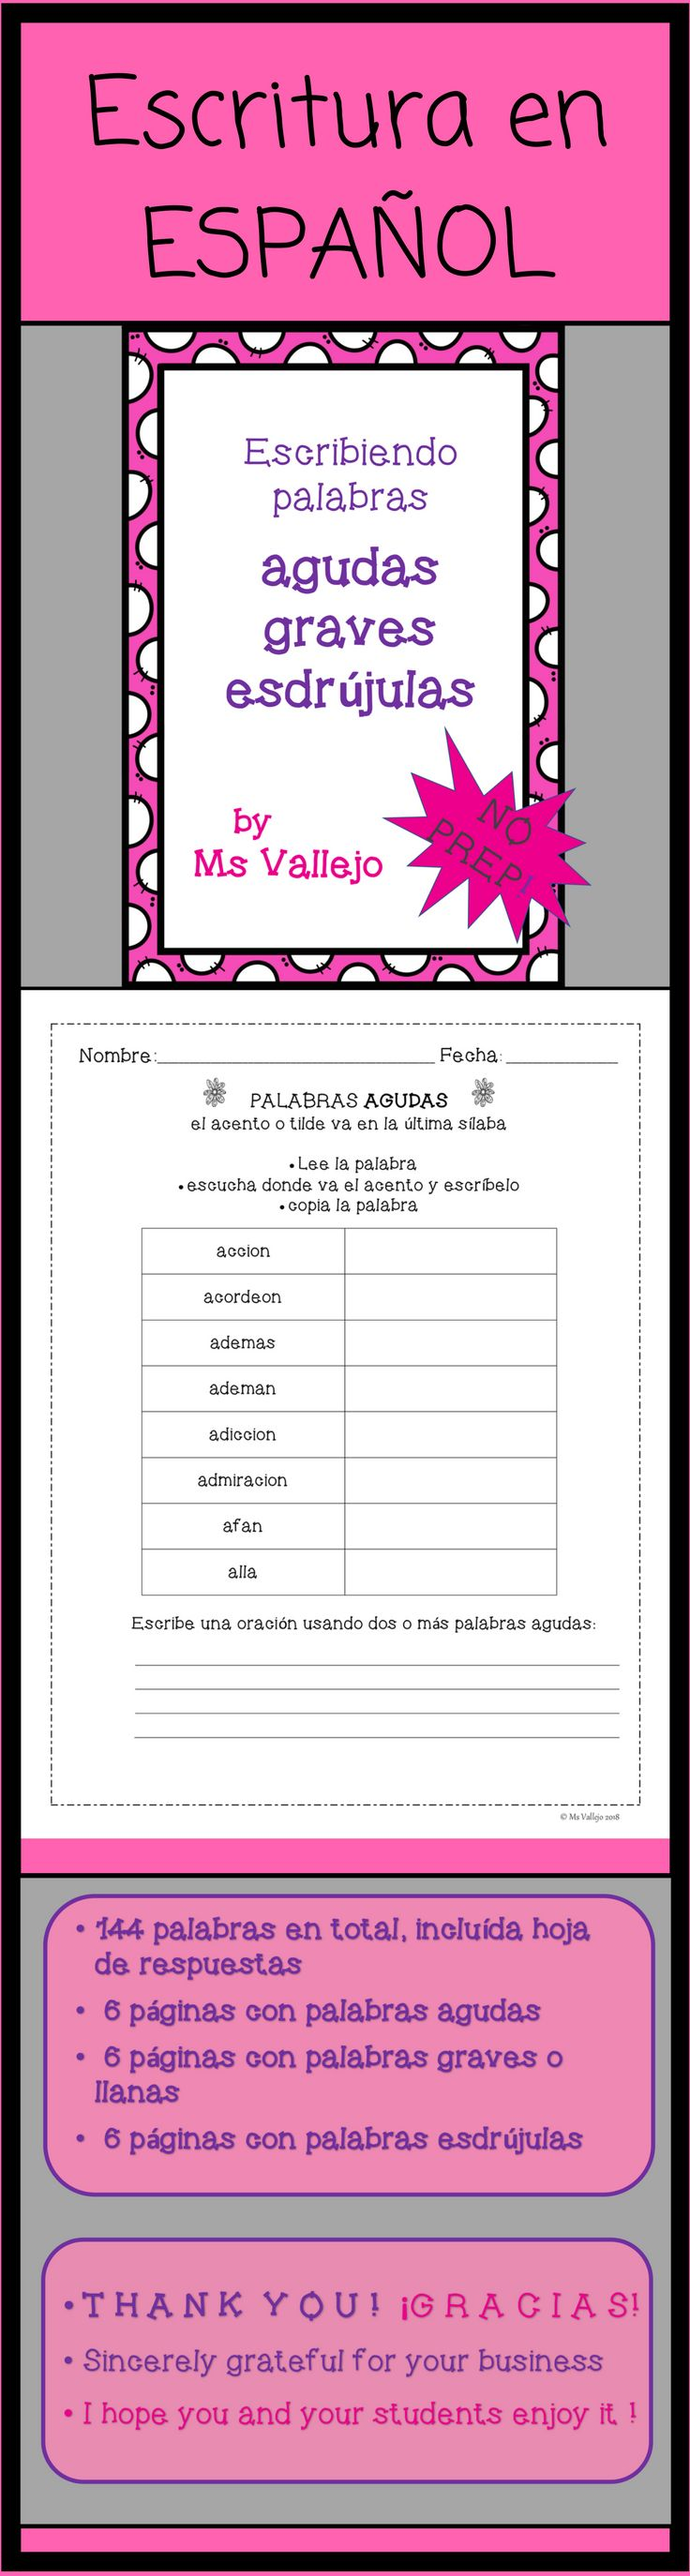 "These worksheets in Spanish are ready to go. Includes answer sheet. It will help your students at practicing writing with ""acento o tilde."" **Estas hojas de trabajo en español son imprimibles. Ayudarán a tus estudiantes a practicar escribiendo ""palabras con acento: agudas, graves o llanas y esdrújulas."""